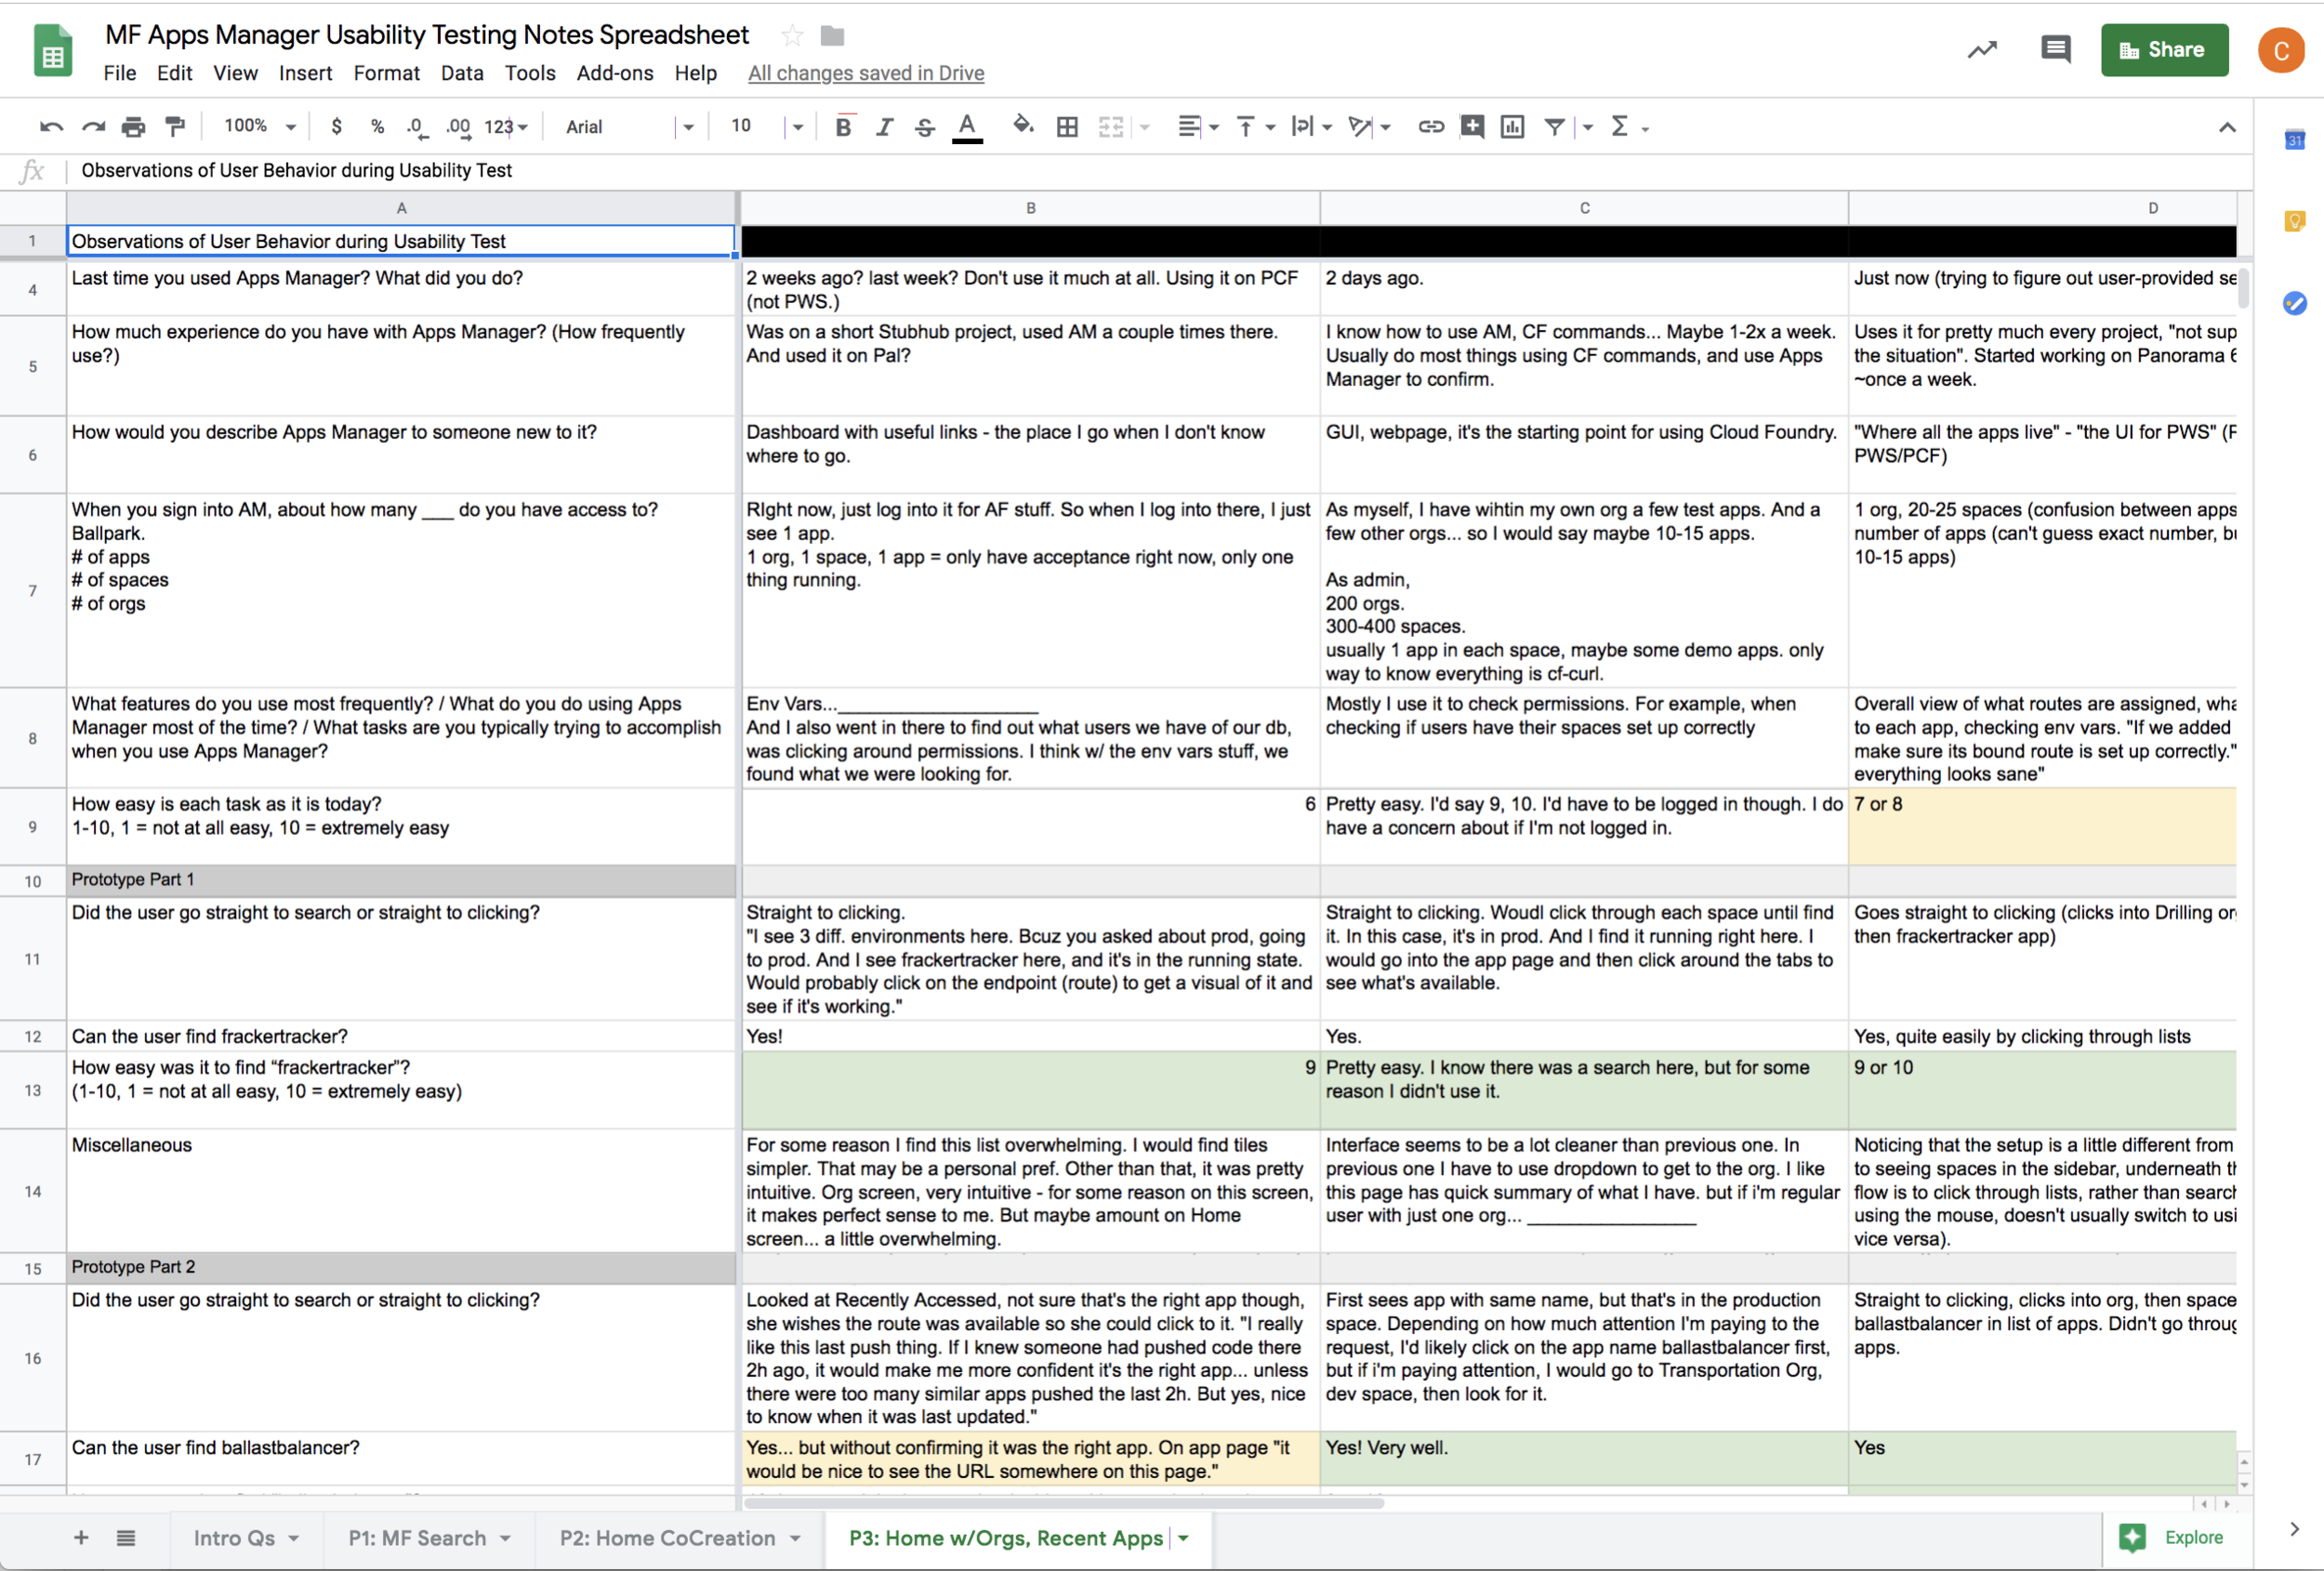 Our usability testing notes were captures in Google Sheets, after which we synthesized across rows the trends and behavior we were observing.